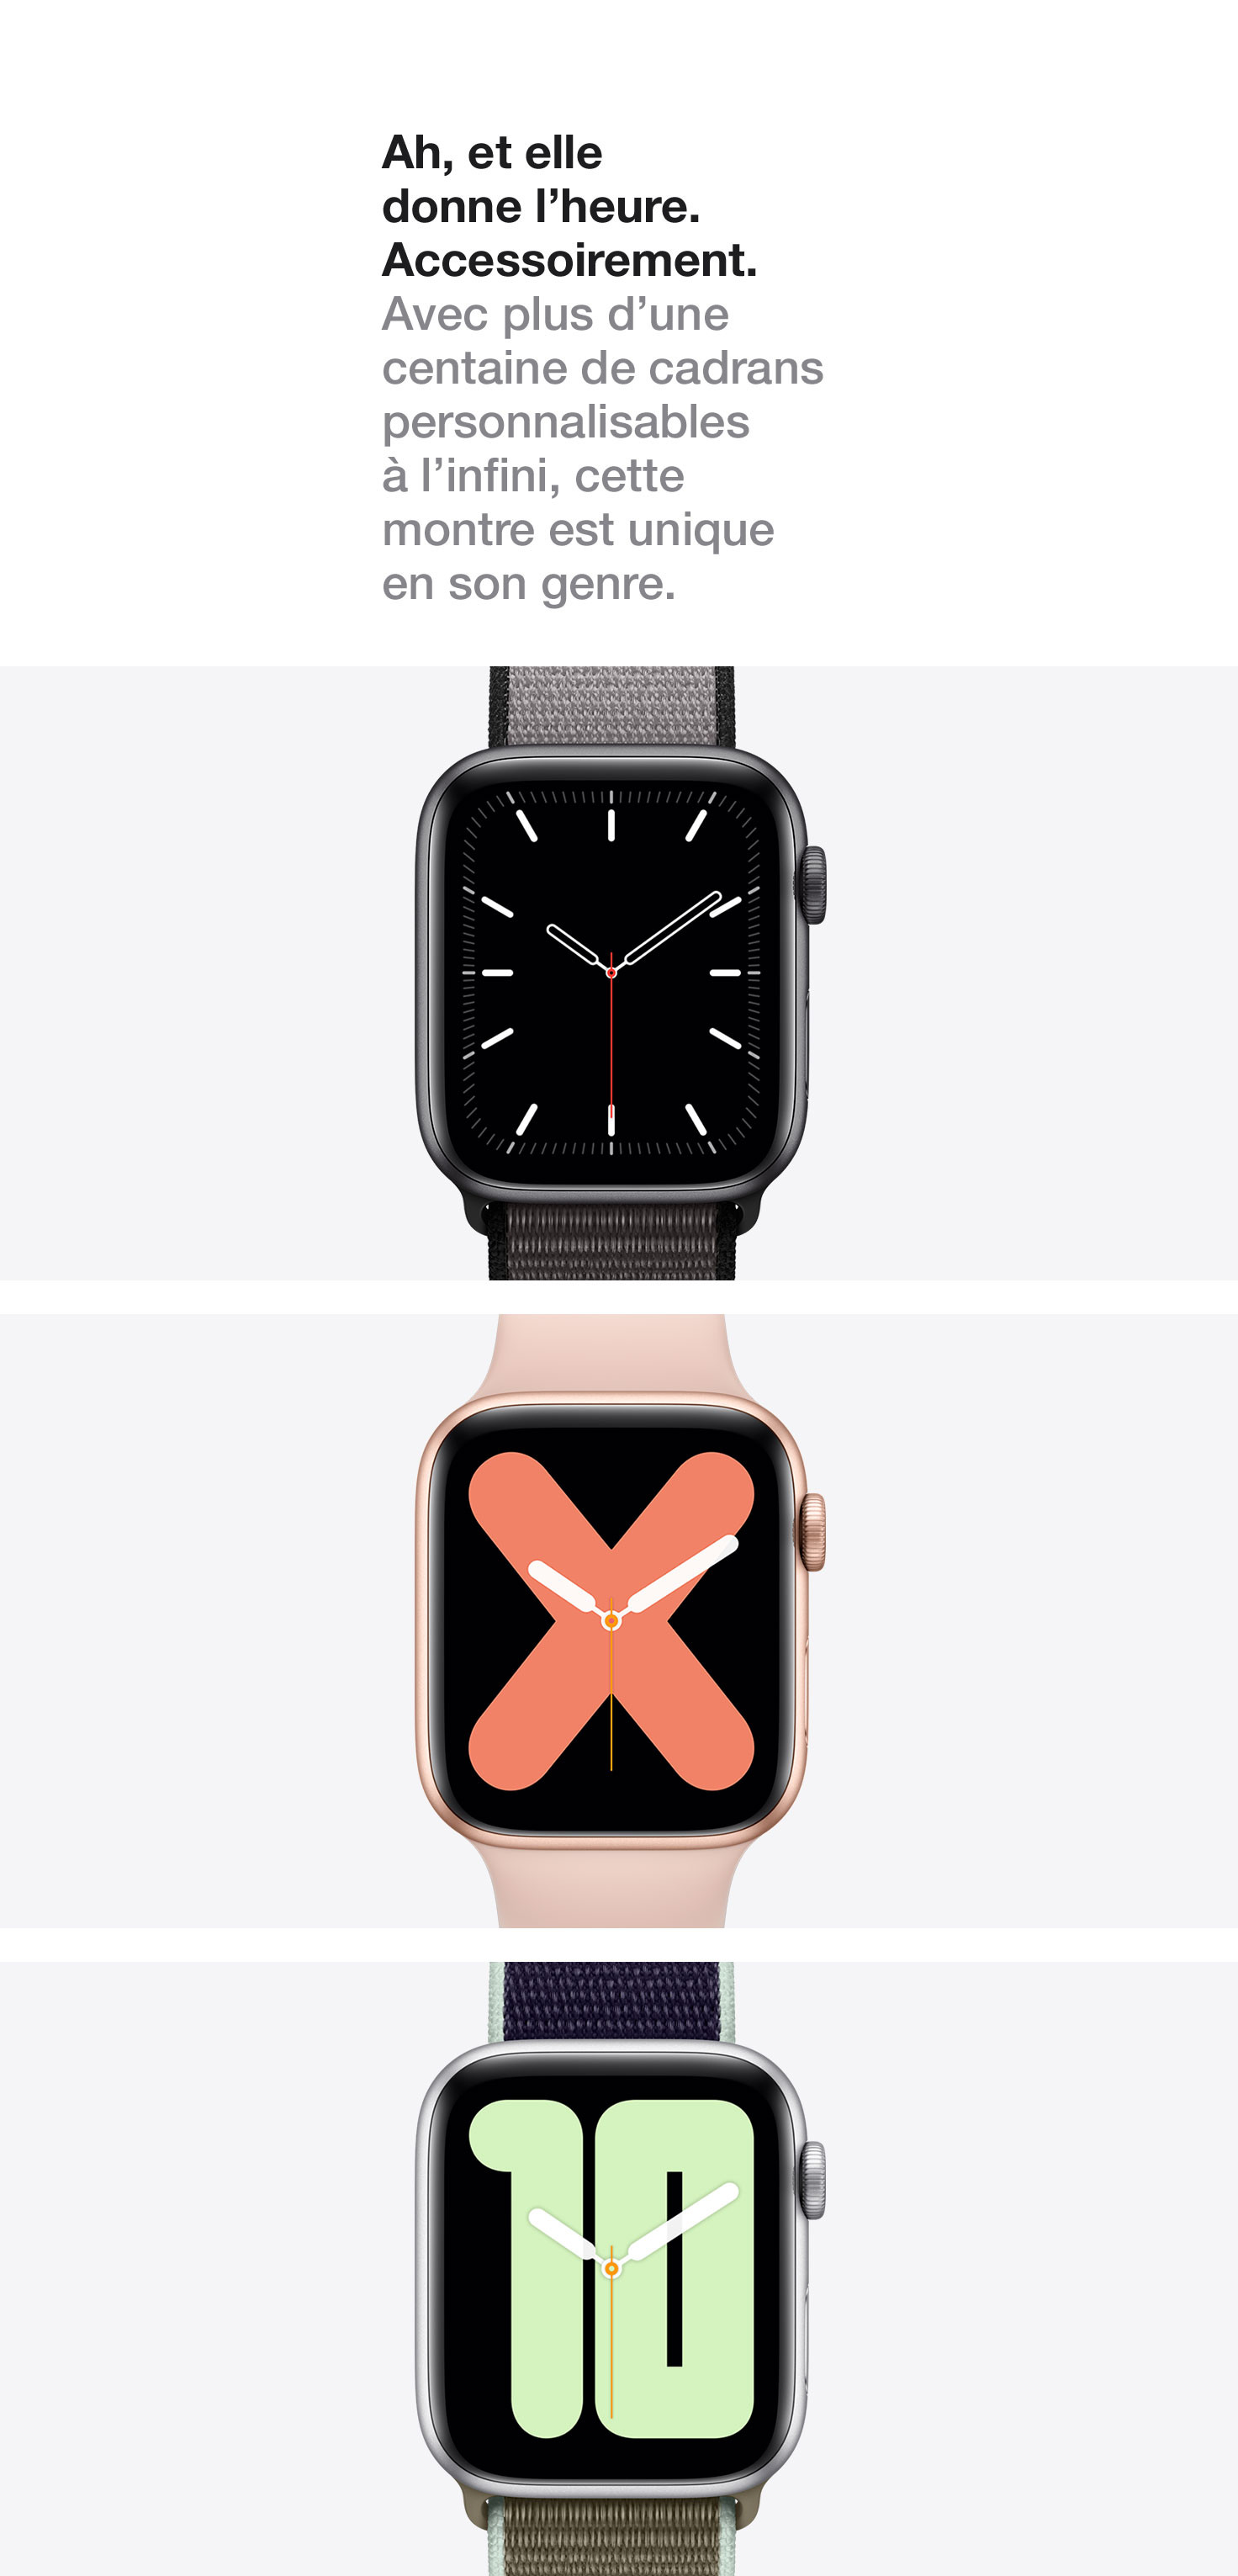 AppleWatchSeries5-productpage_fr-mobile_08.jpg